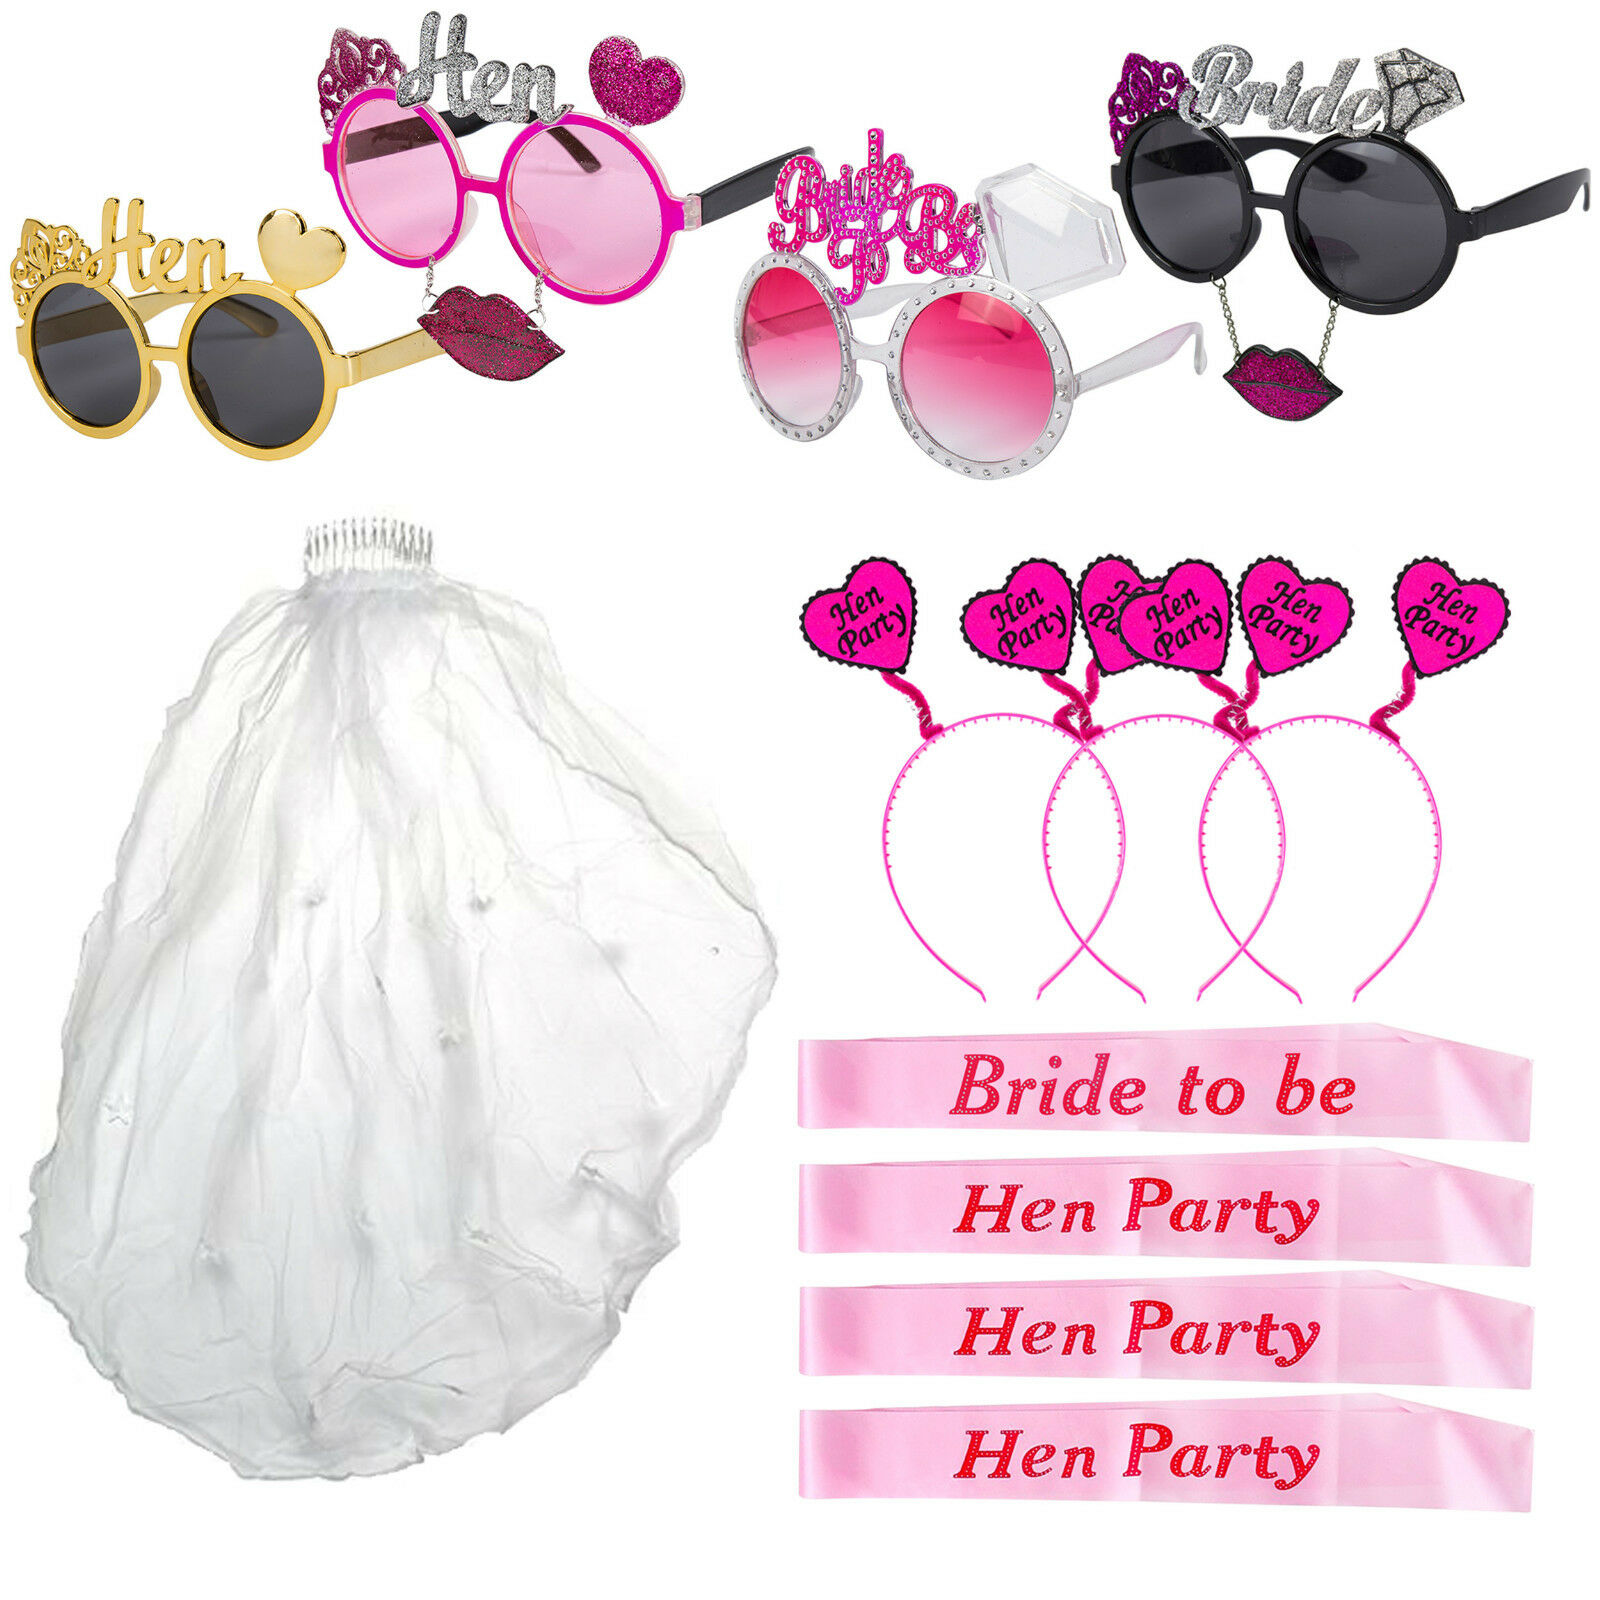 Hen Party Night Fun Accessories Bunting L Plates Photo Booth Props Headbands